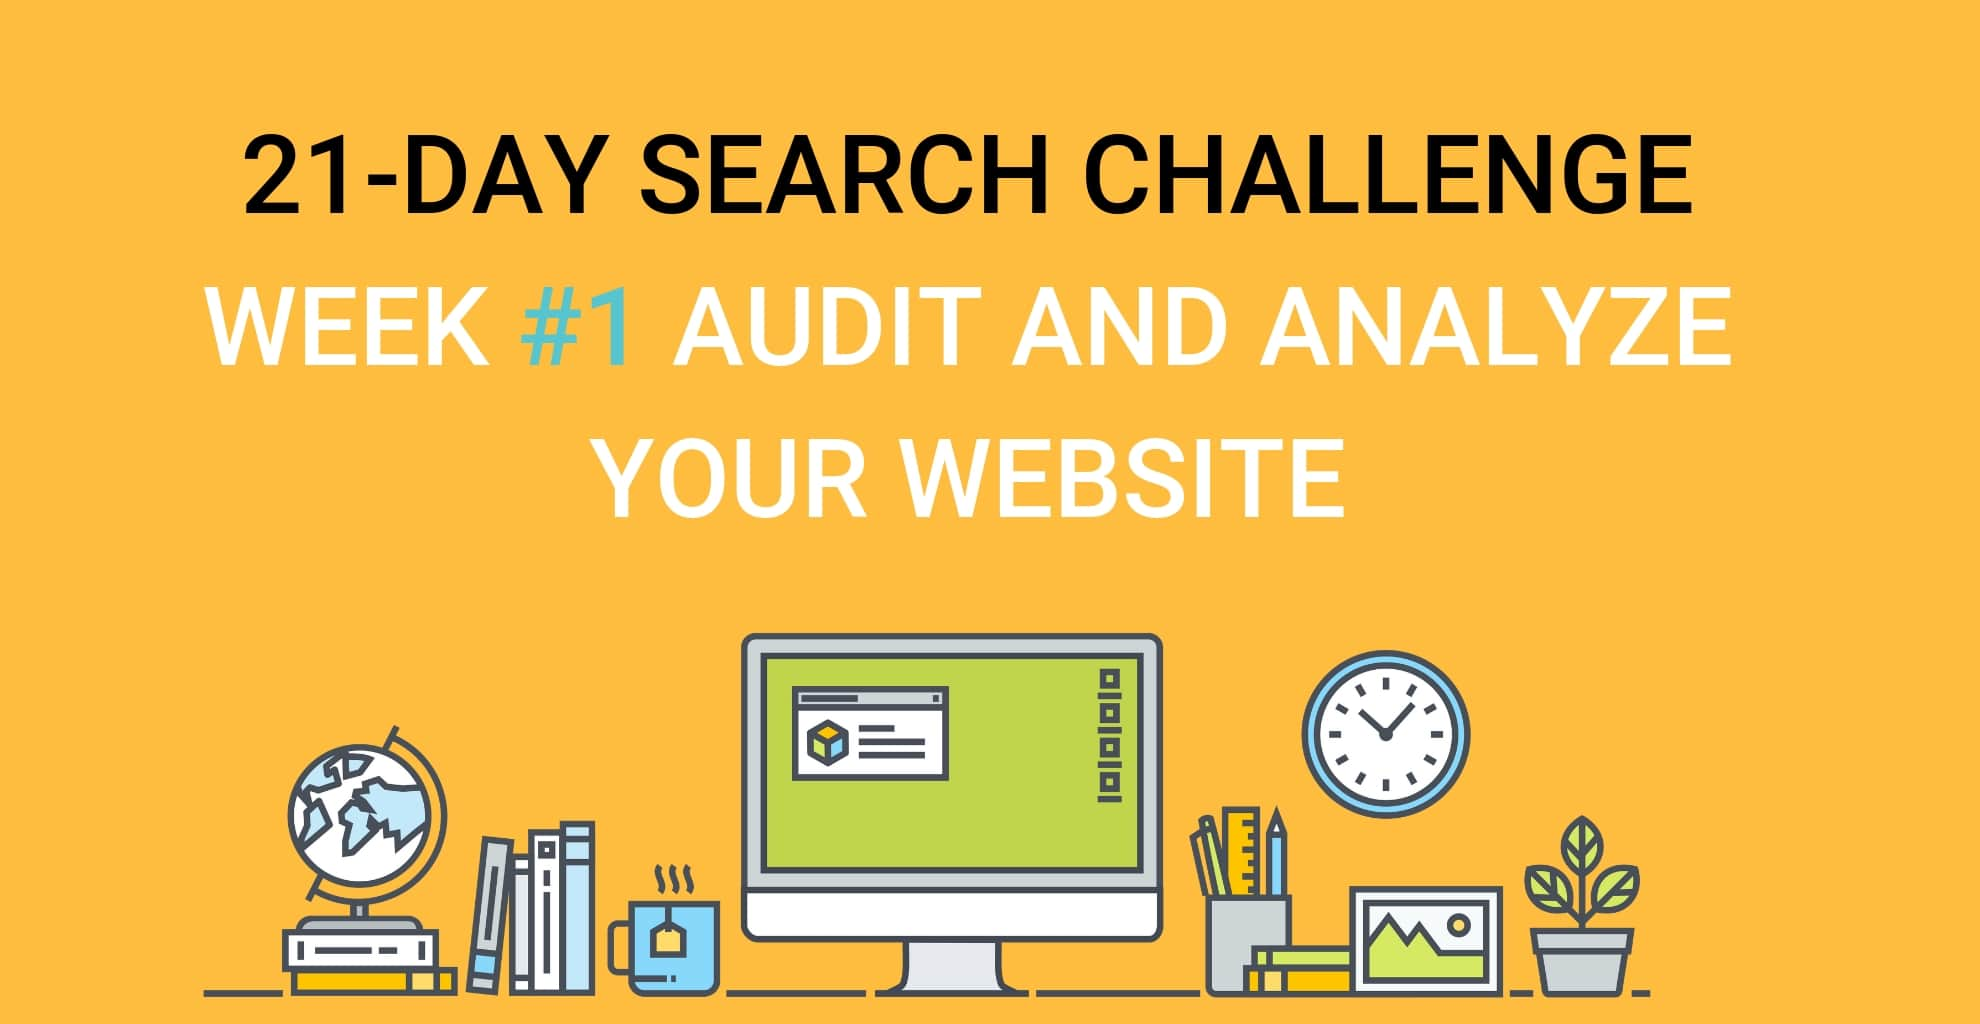 seo consultant from Marwick Marketing SEO audit your website